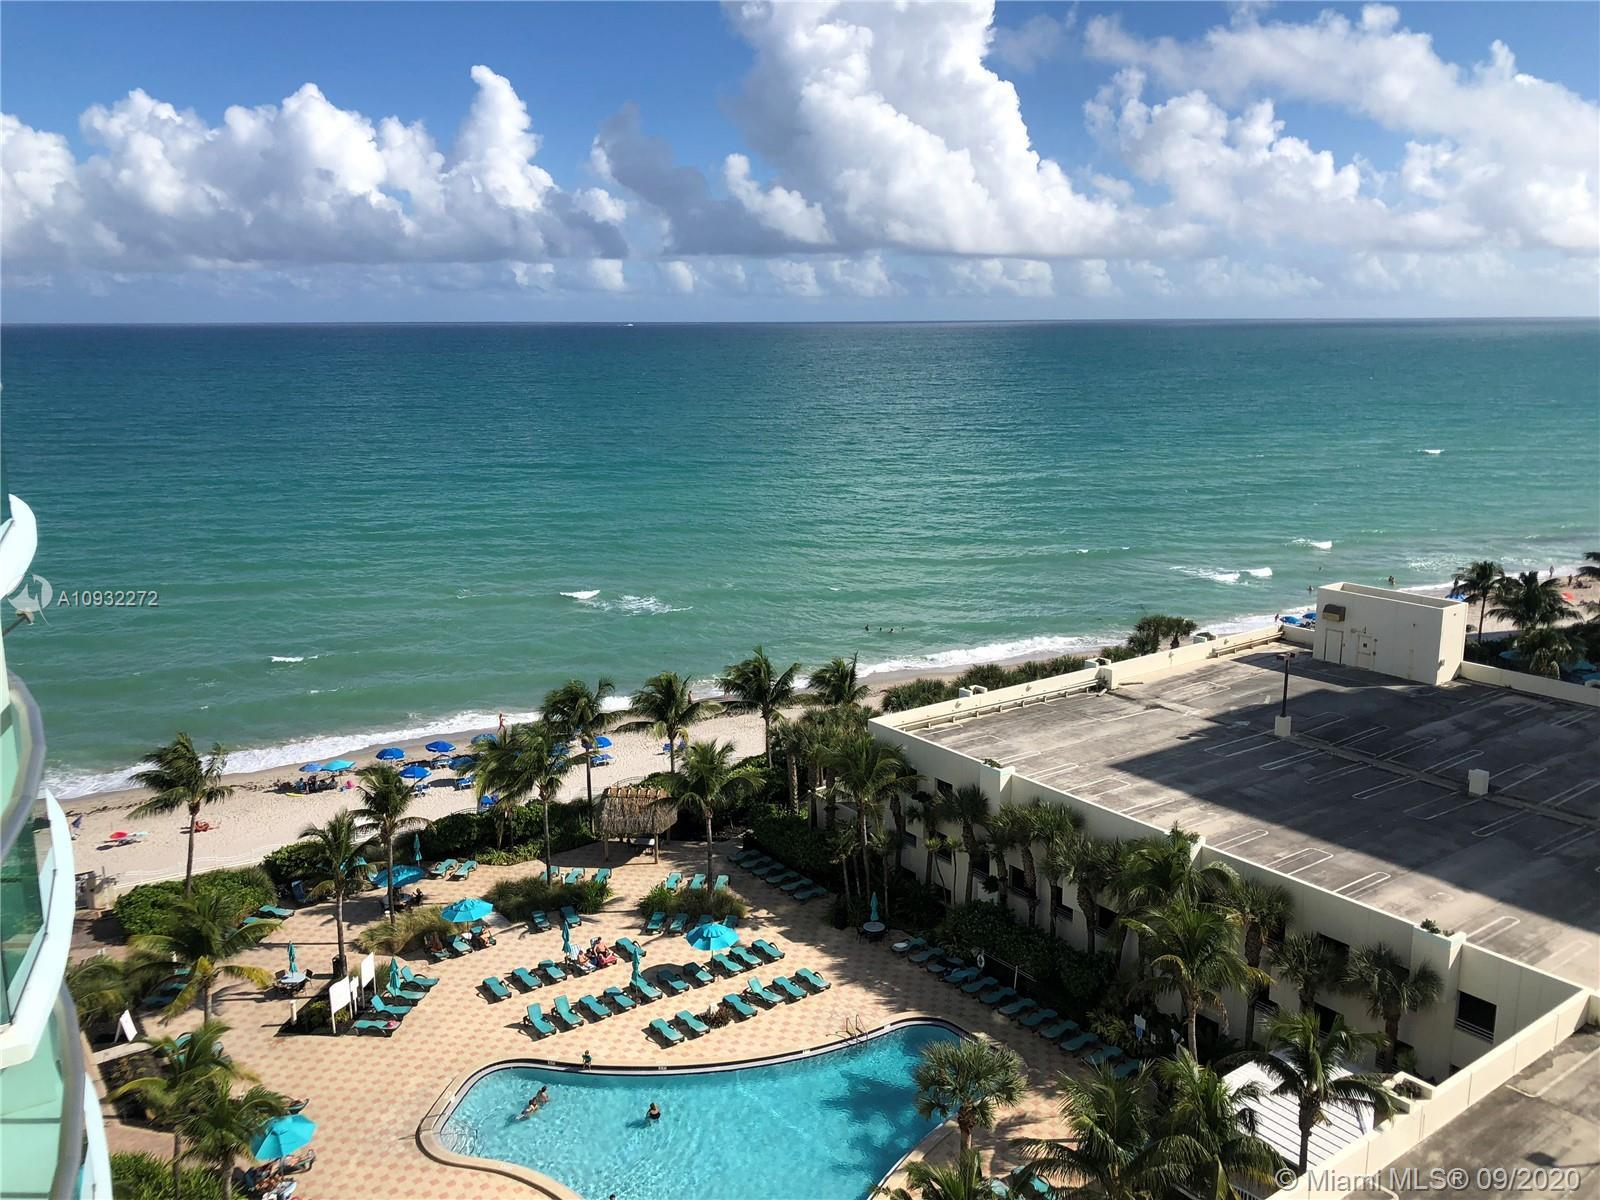 MID-LUXURY 1BR/1BA CONDO ON THE BEACH WITH A DIRECT SE OCEAN VIEW. THIS UNIT HAS BEEN COMPLETELY UPD